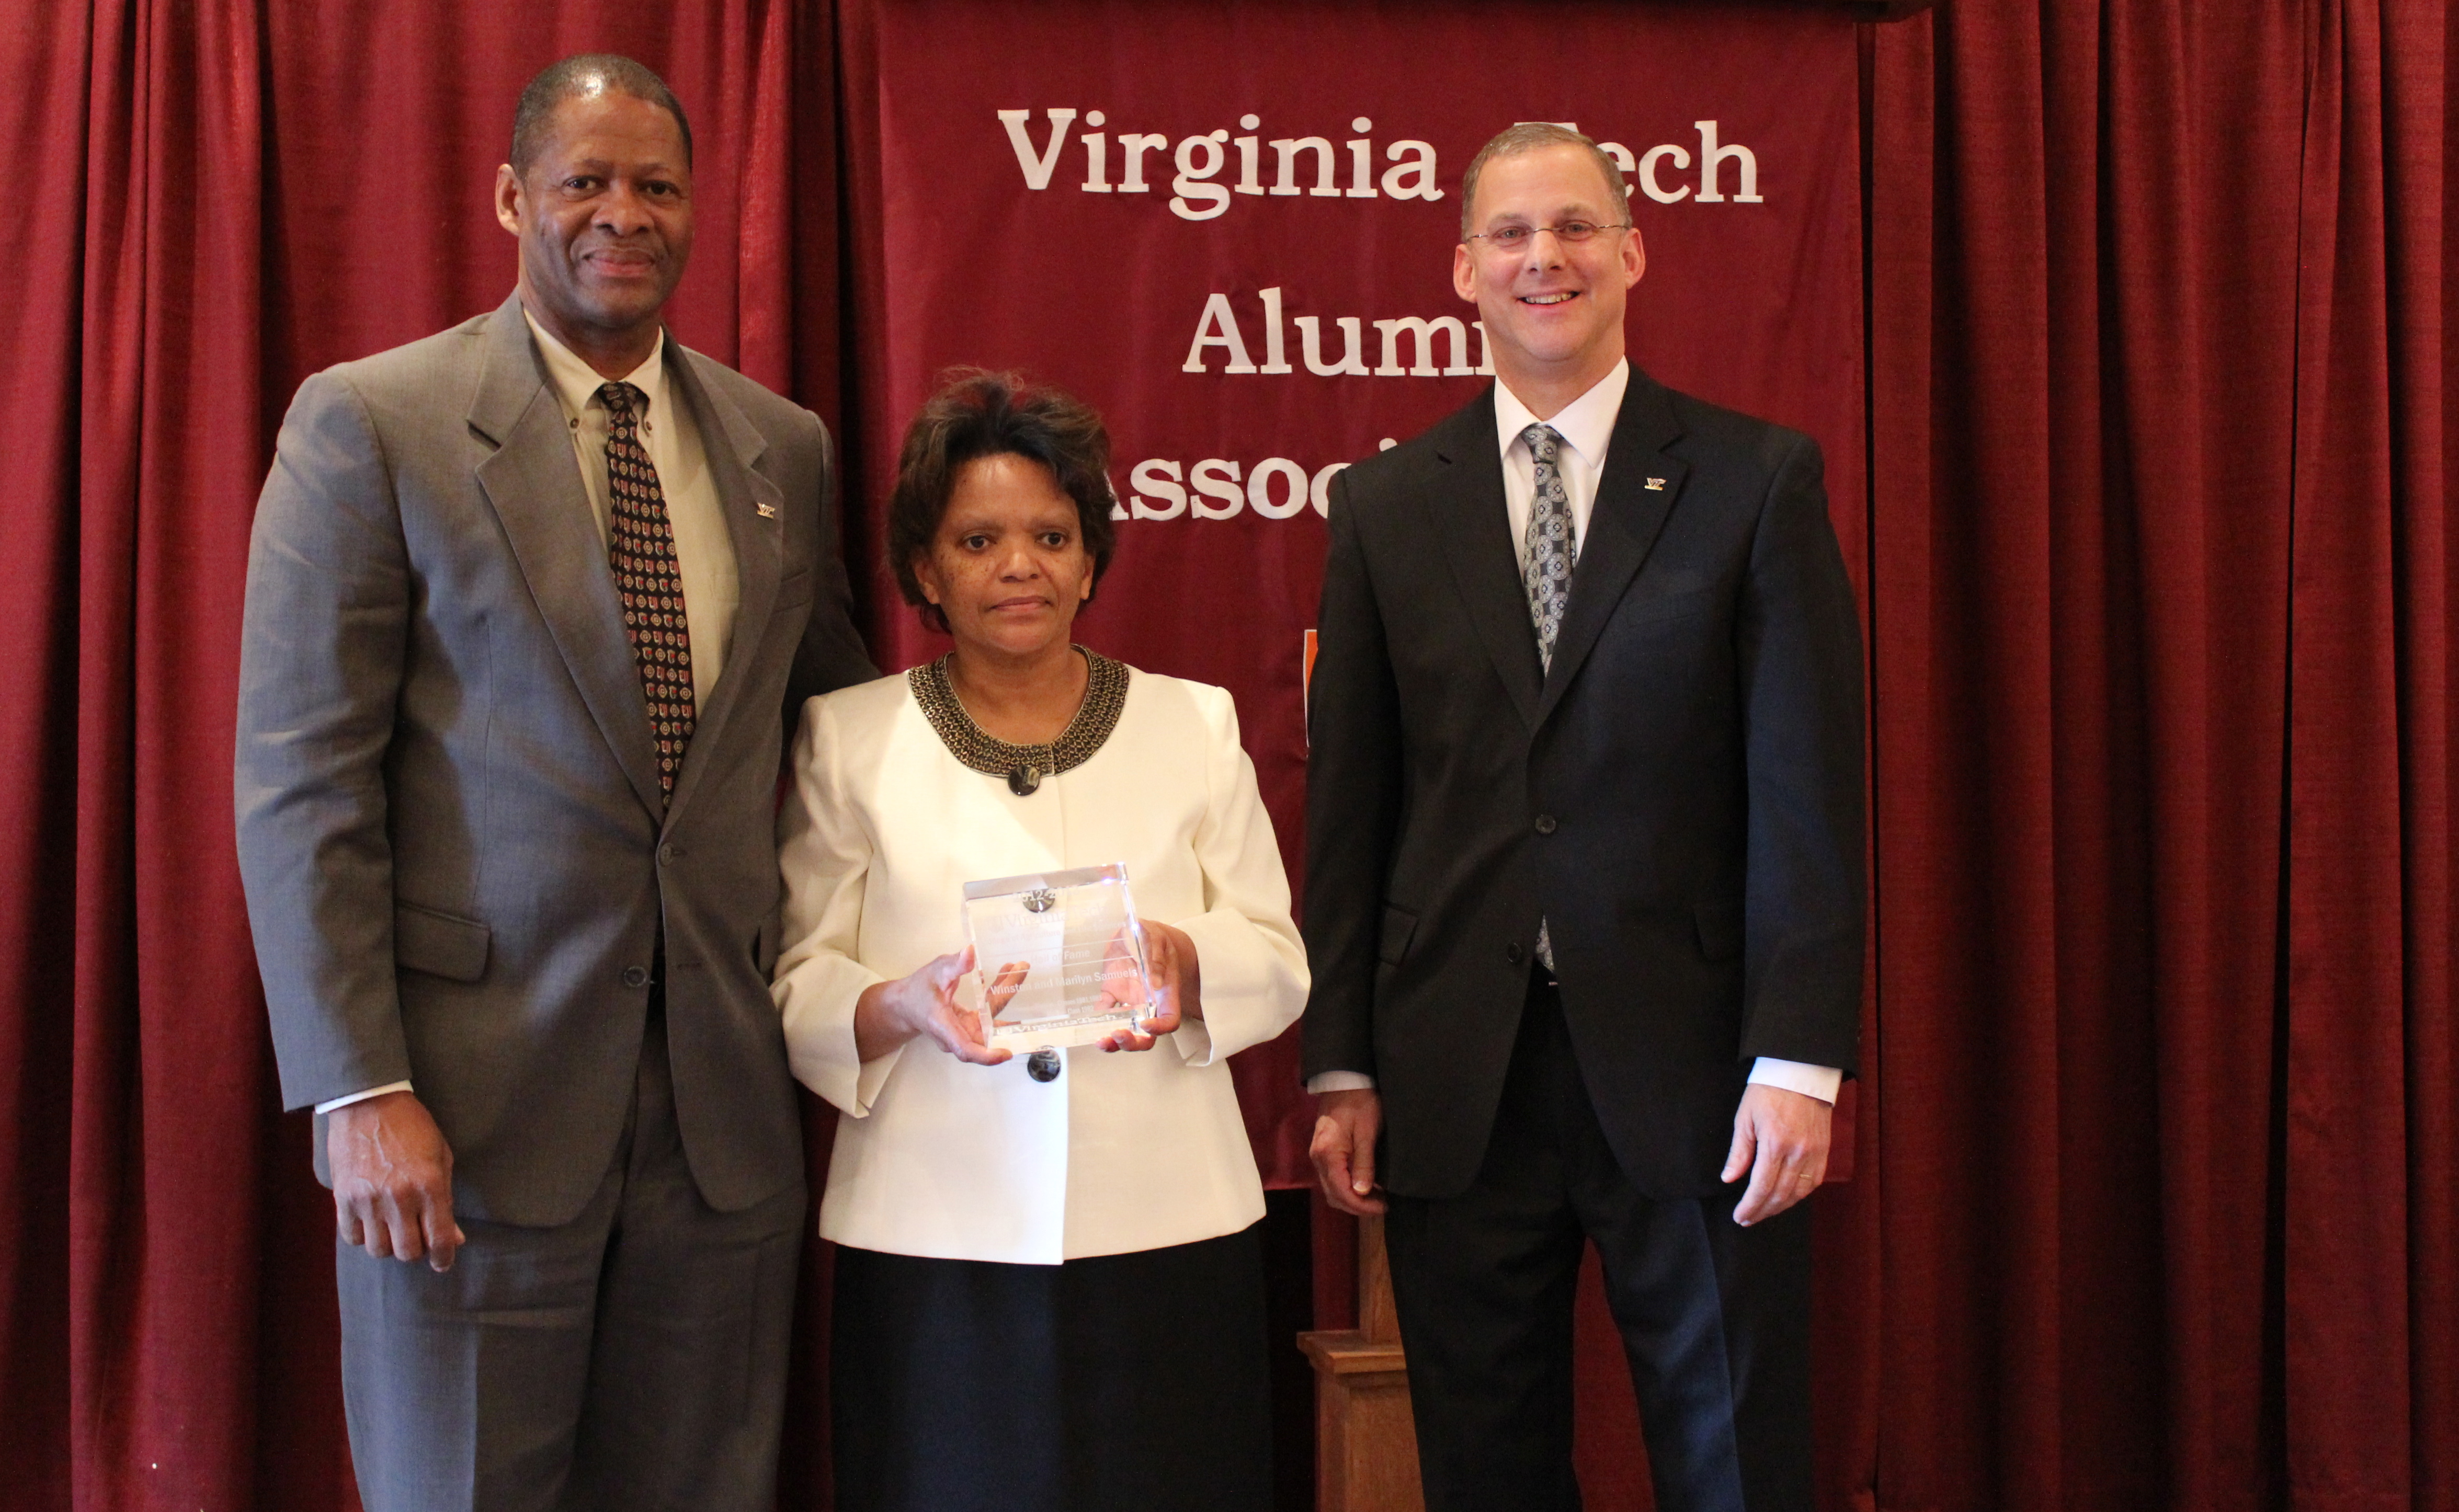 Alan Grant, dean of the College of Agriculture and Life Sciences, inducts Winston and Marilyn Samuels into the Virginia Tech College of Agriculture and Life Sciences Hall of Fame.